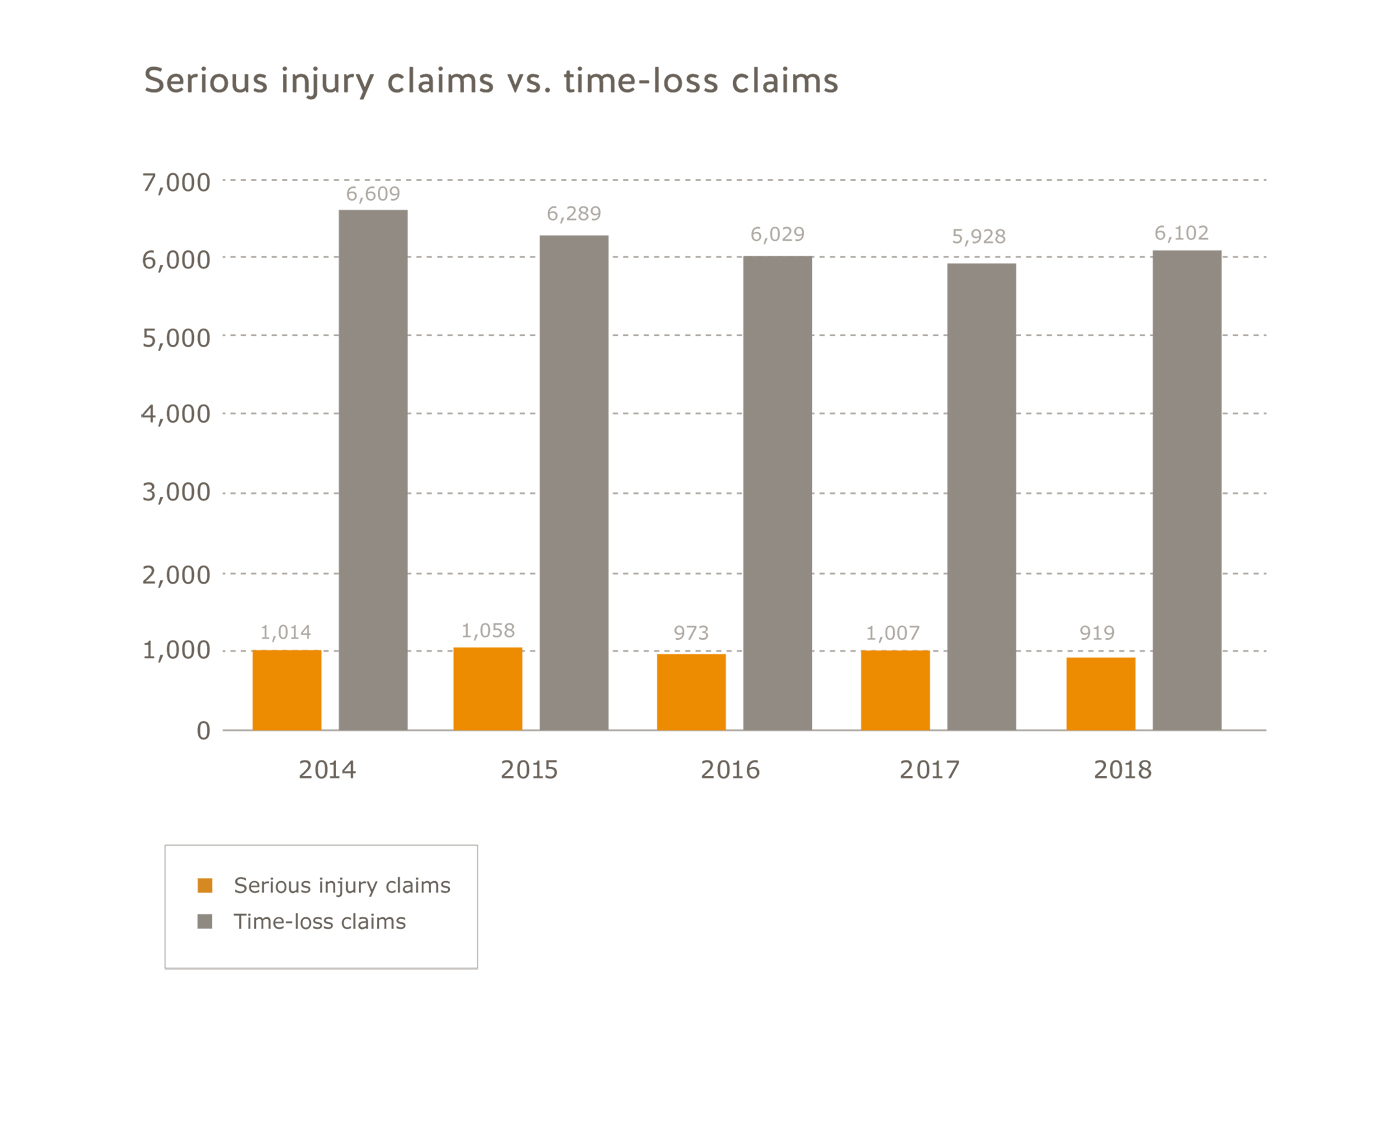 Manufacturing sector serious injury claims vs. time-loss claims for 2014 to 2018. Serious injury claims: 2014=1,014; 2015=1,058; 2016=973; 2017=1,007; 2018=919. Time-lopss claims: 2014=6,609; 2015=6,289' 2016=6,029; 2017=5,928; 2018=6,102